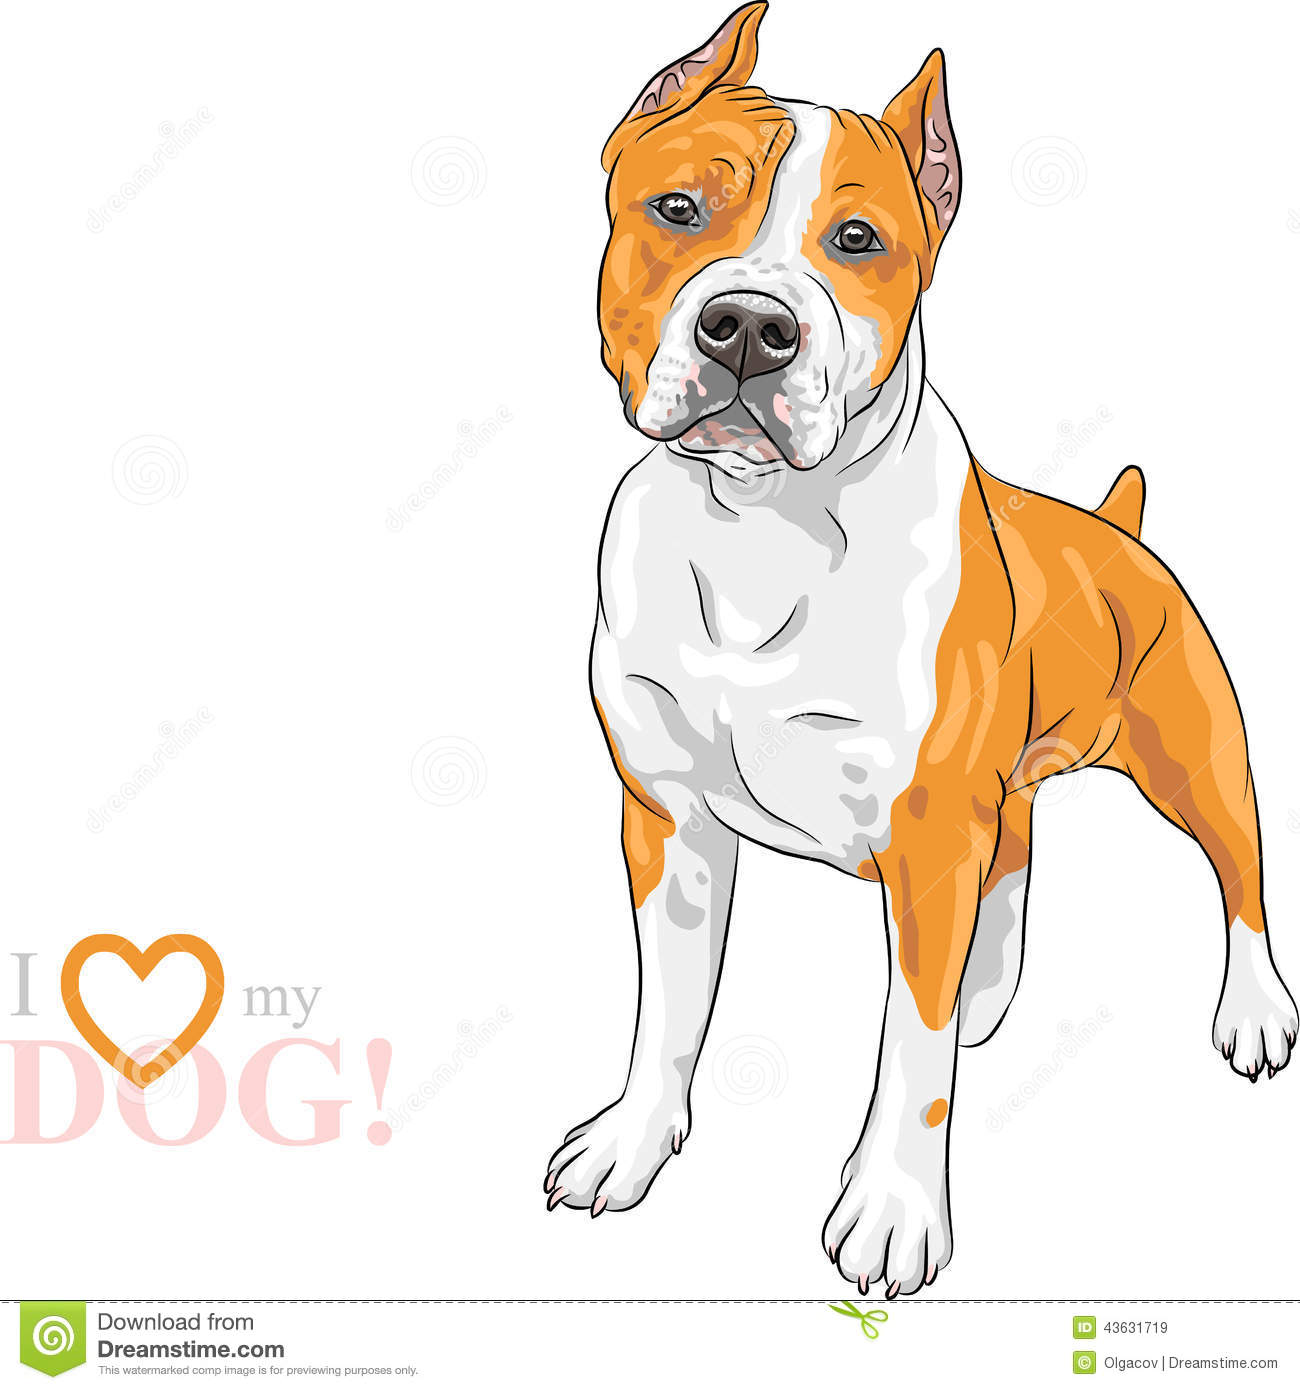 Pitbull clipart sketch Bull Pit  dog pit